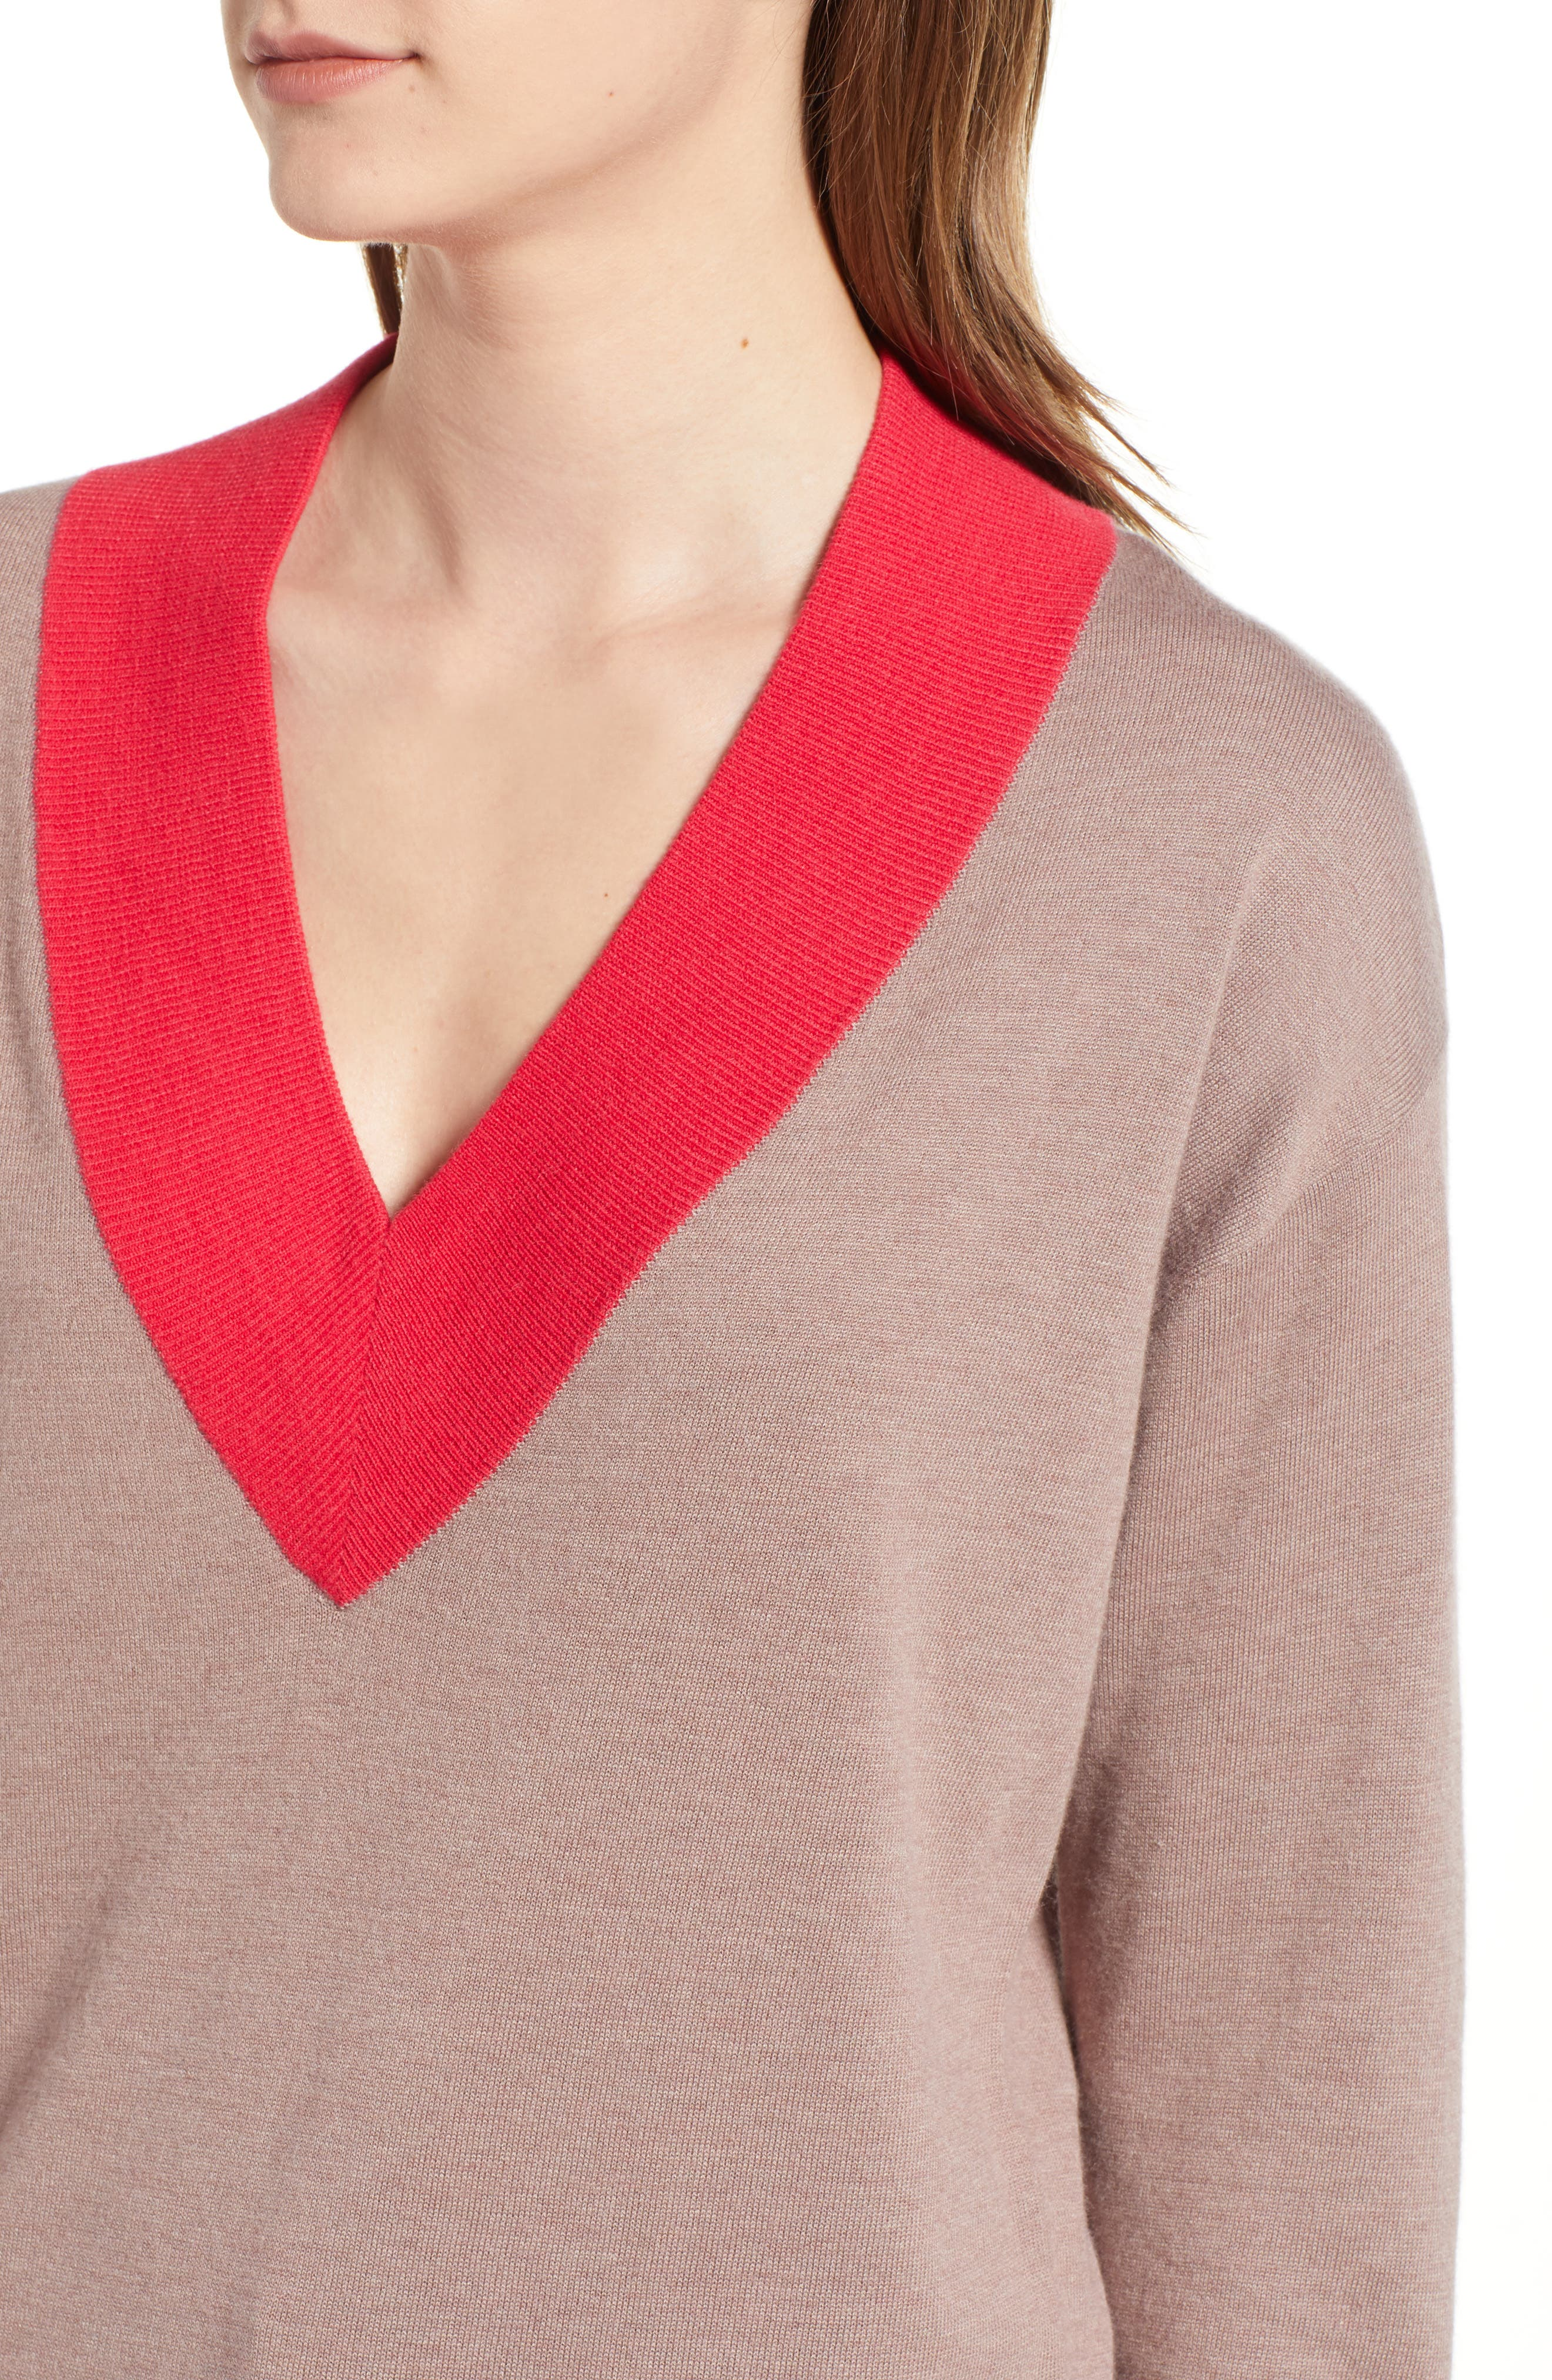 CHELSEA28,                             V-Neck Sweater,                             Alternate thumbnail 4, color,                             PINK FAWN HEATHER COMBO